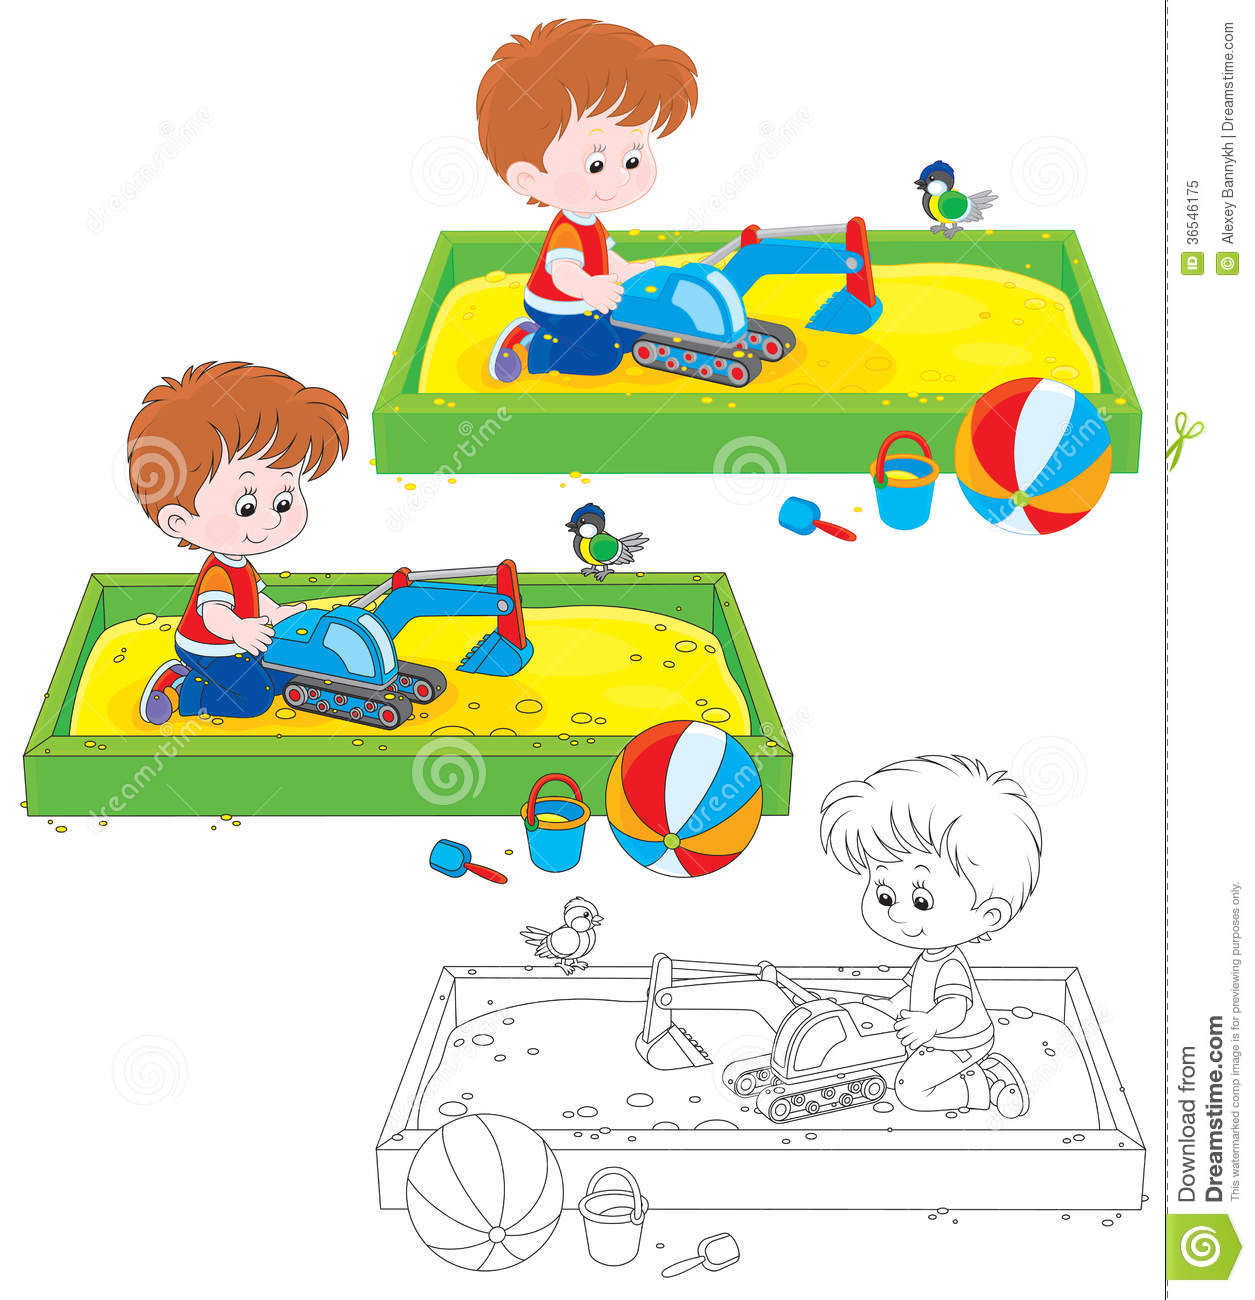 boy play in a sandbox royalty free stock photo image 36546175